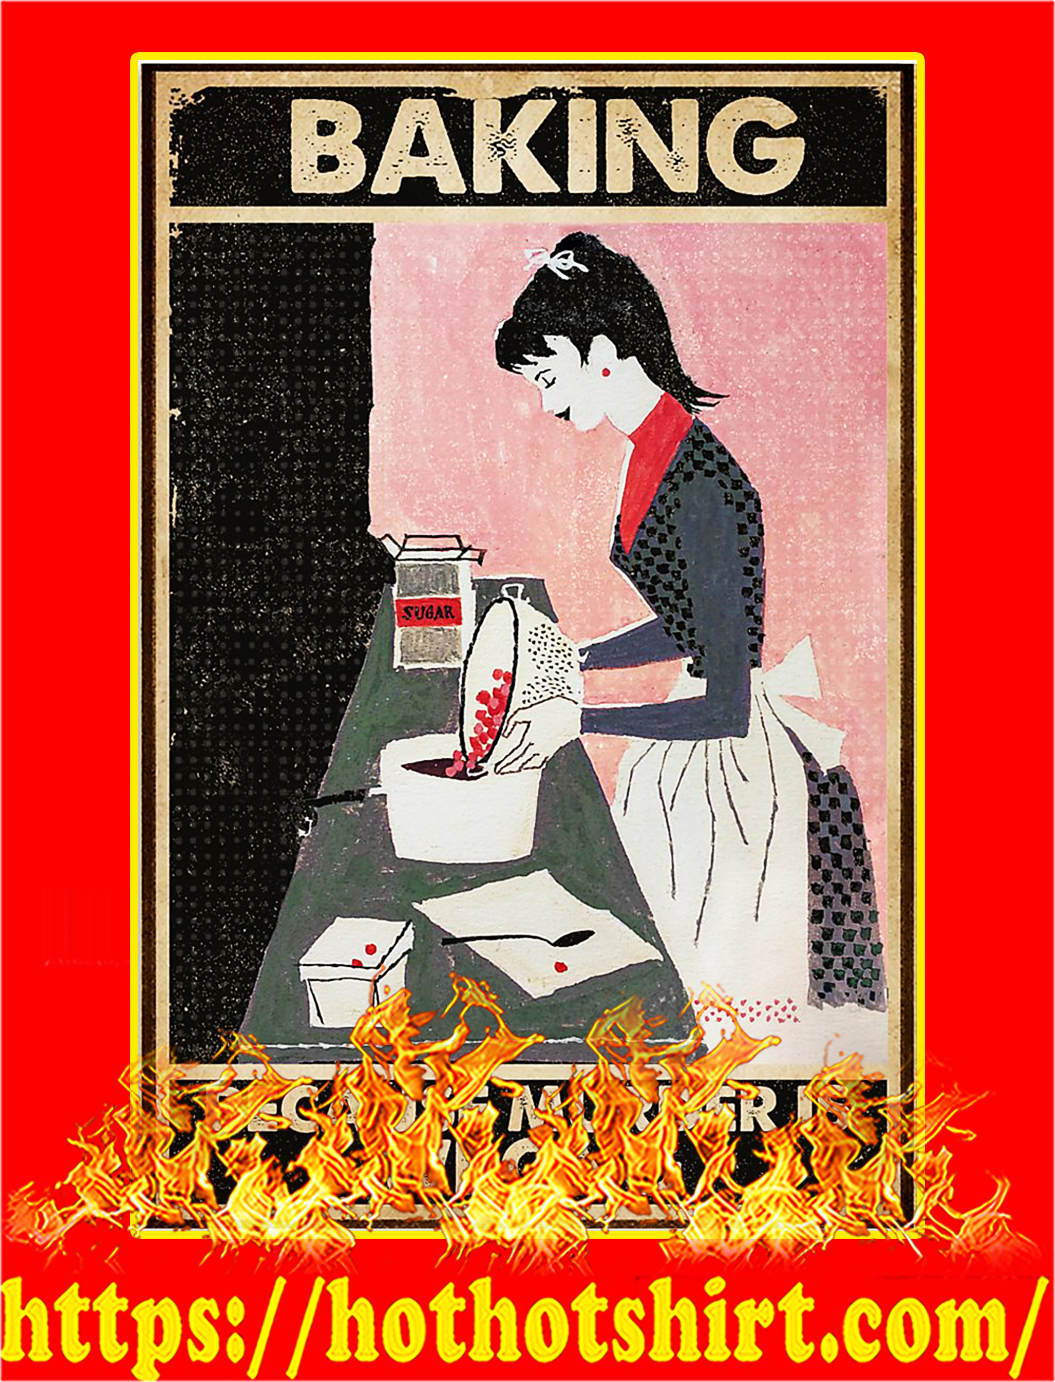 Baking because muder is wrong poster - A3